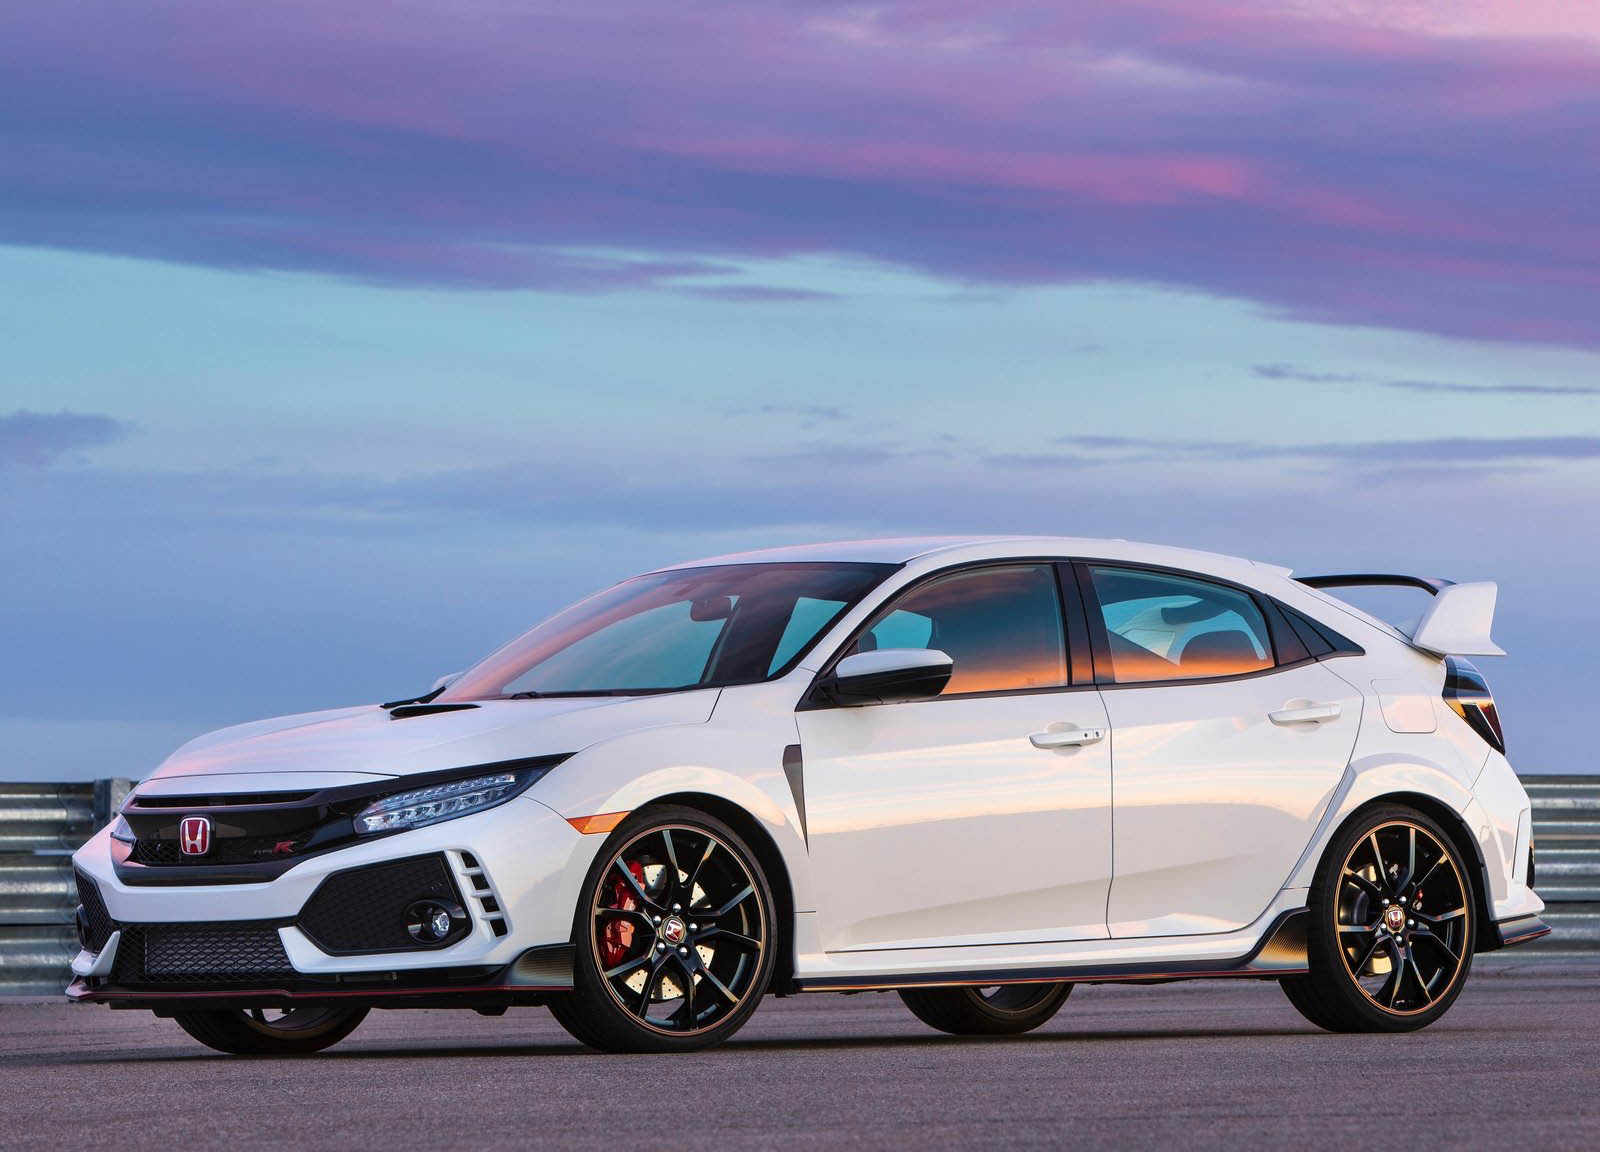 honda 39 s new civic type r is just the beginning says chief engineer carscoops. Black Bedroom Furniture Sets. Home Design Ideas